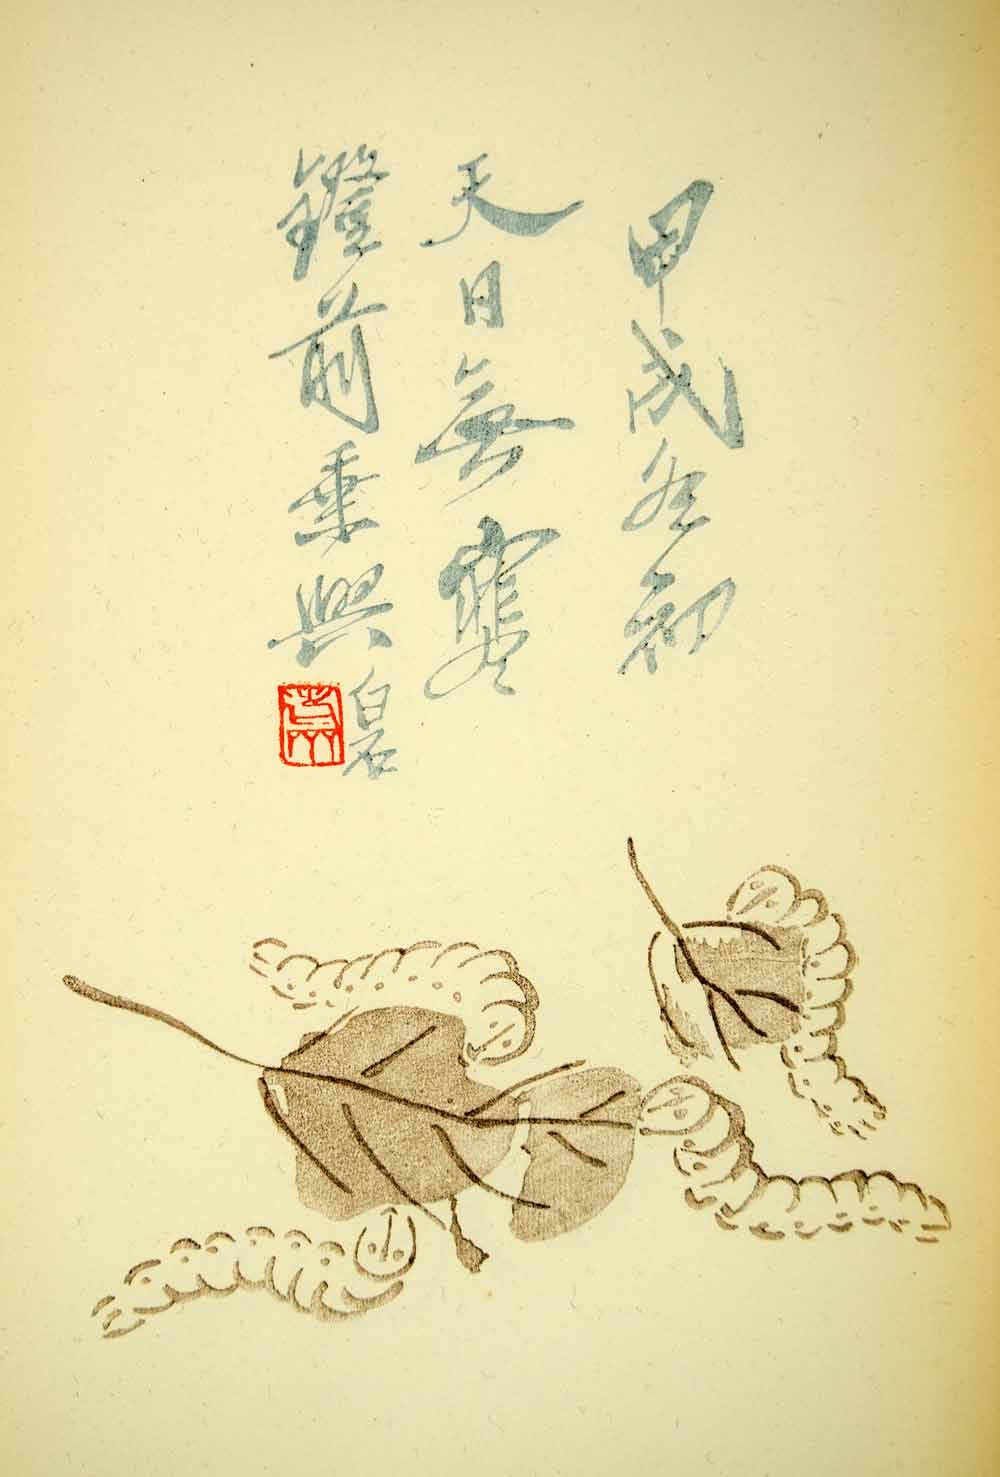 1953 Lithograph Chi Pai-Shih Silk Worms Mulberry Leaves Caterpillar Nature Art - Period Paper